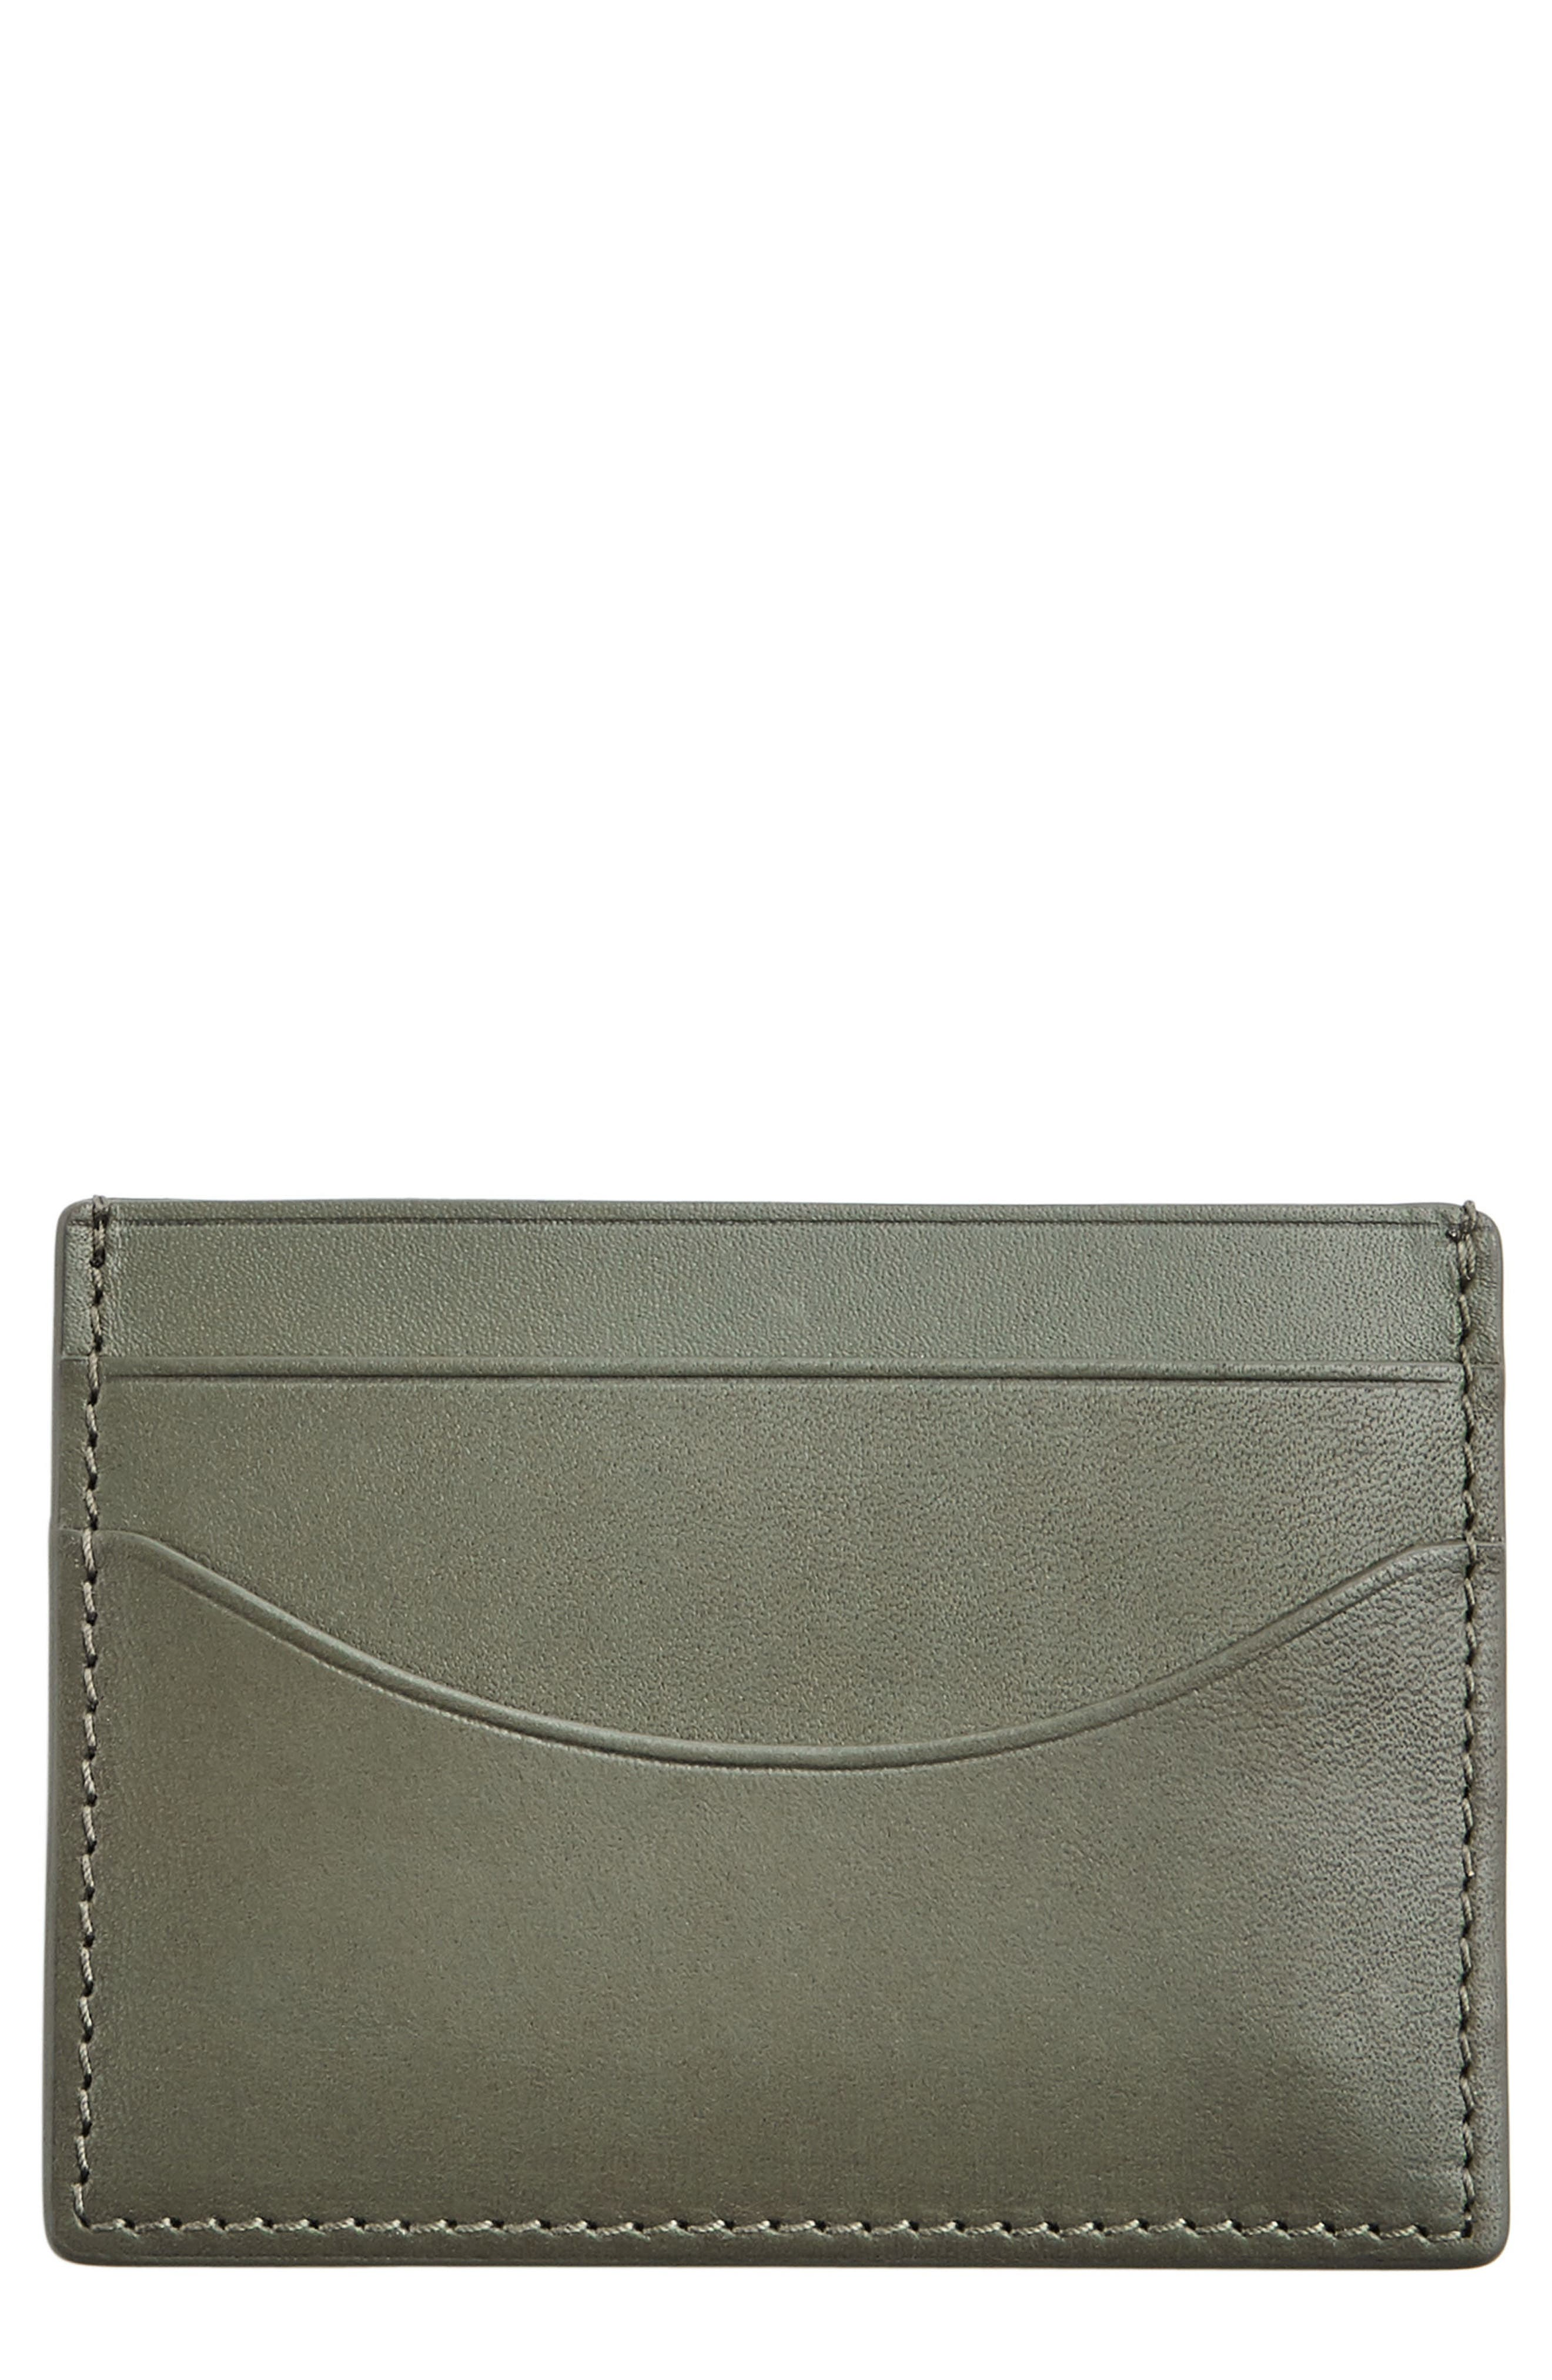 'Torben' Leather Card Case,                             Main thumbnail 1, color,                             357